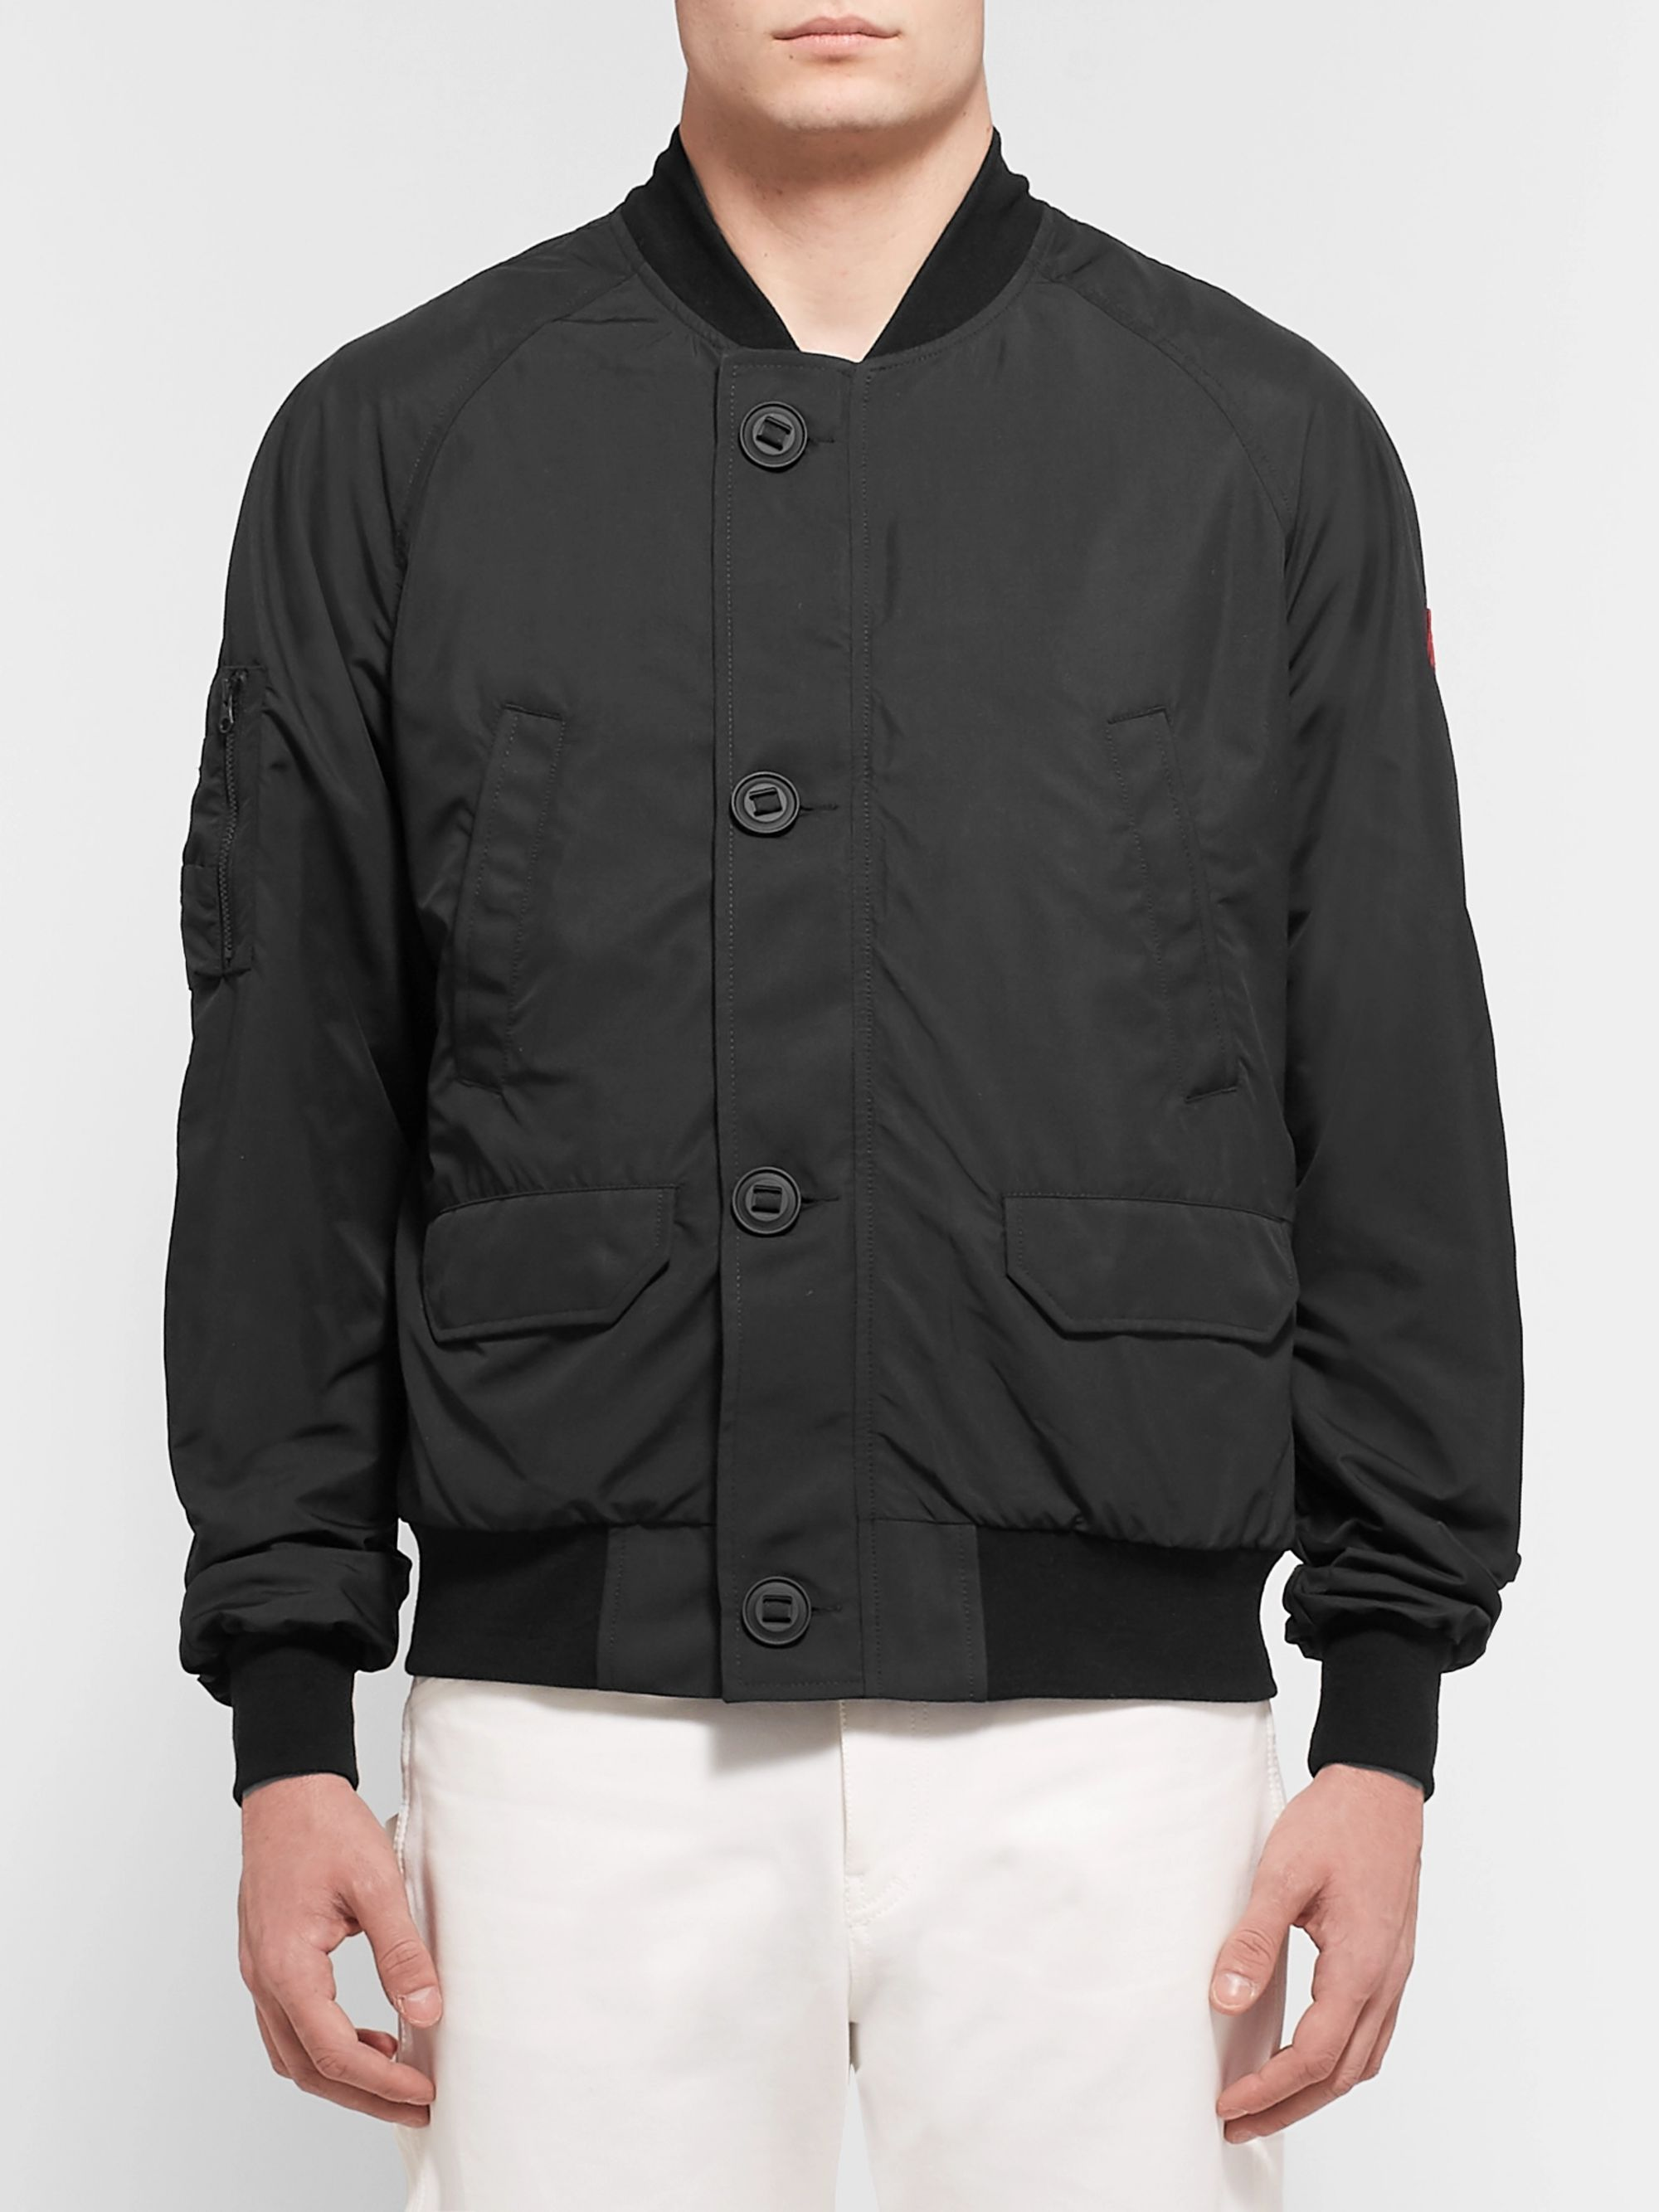 Canada Goose Faber Dura-Force Light Bomber Jacket